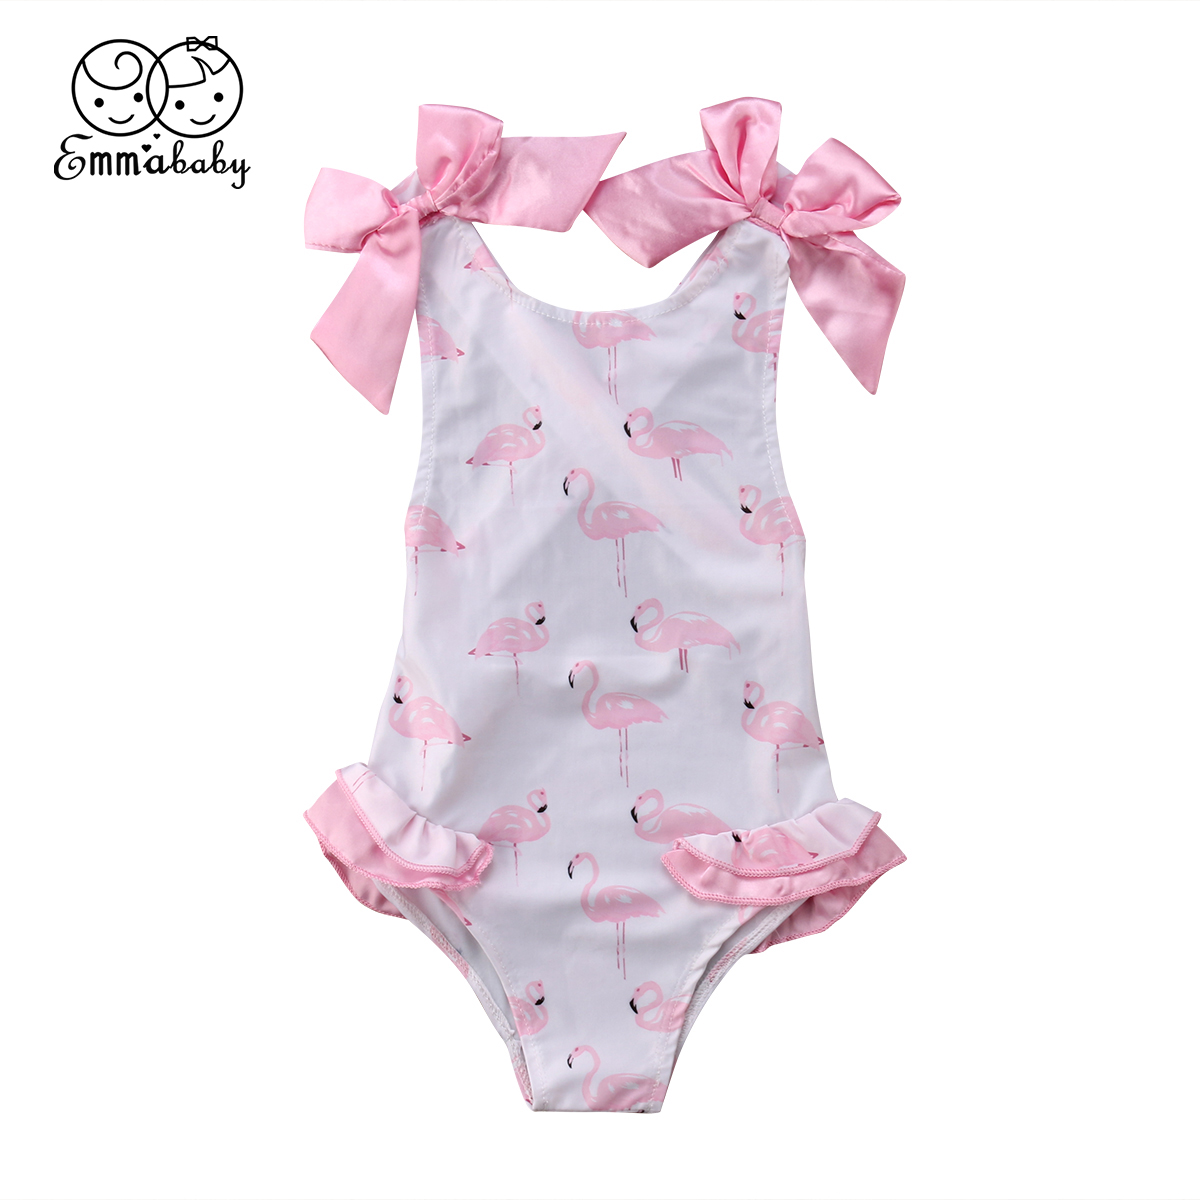 Summer Baby Girl Bow Swimsuit Flamingo Kids Bodysuit Swimming Clothes Swimwear Bathing Suit For Baby Girl funfeliz flamingo swimsuit for girls 2 8 years one piece girls swimwear cute unicorn kids swimming suit children bathing suits